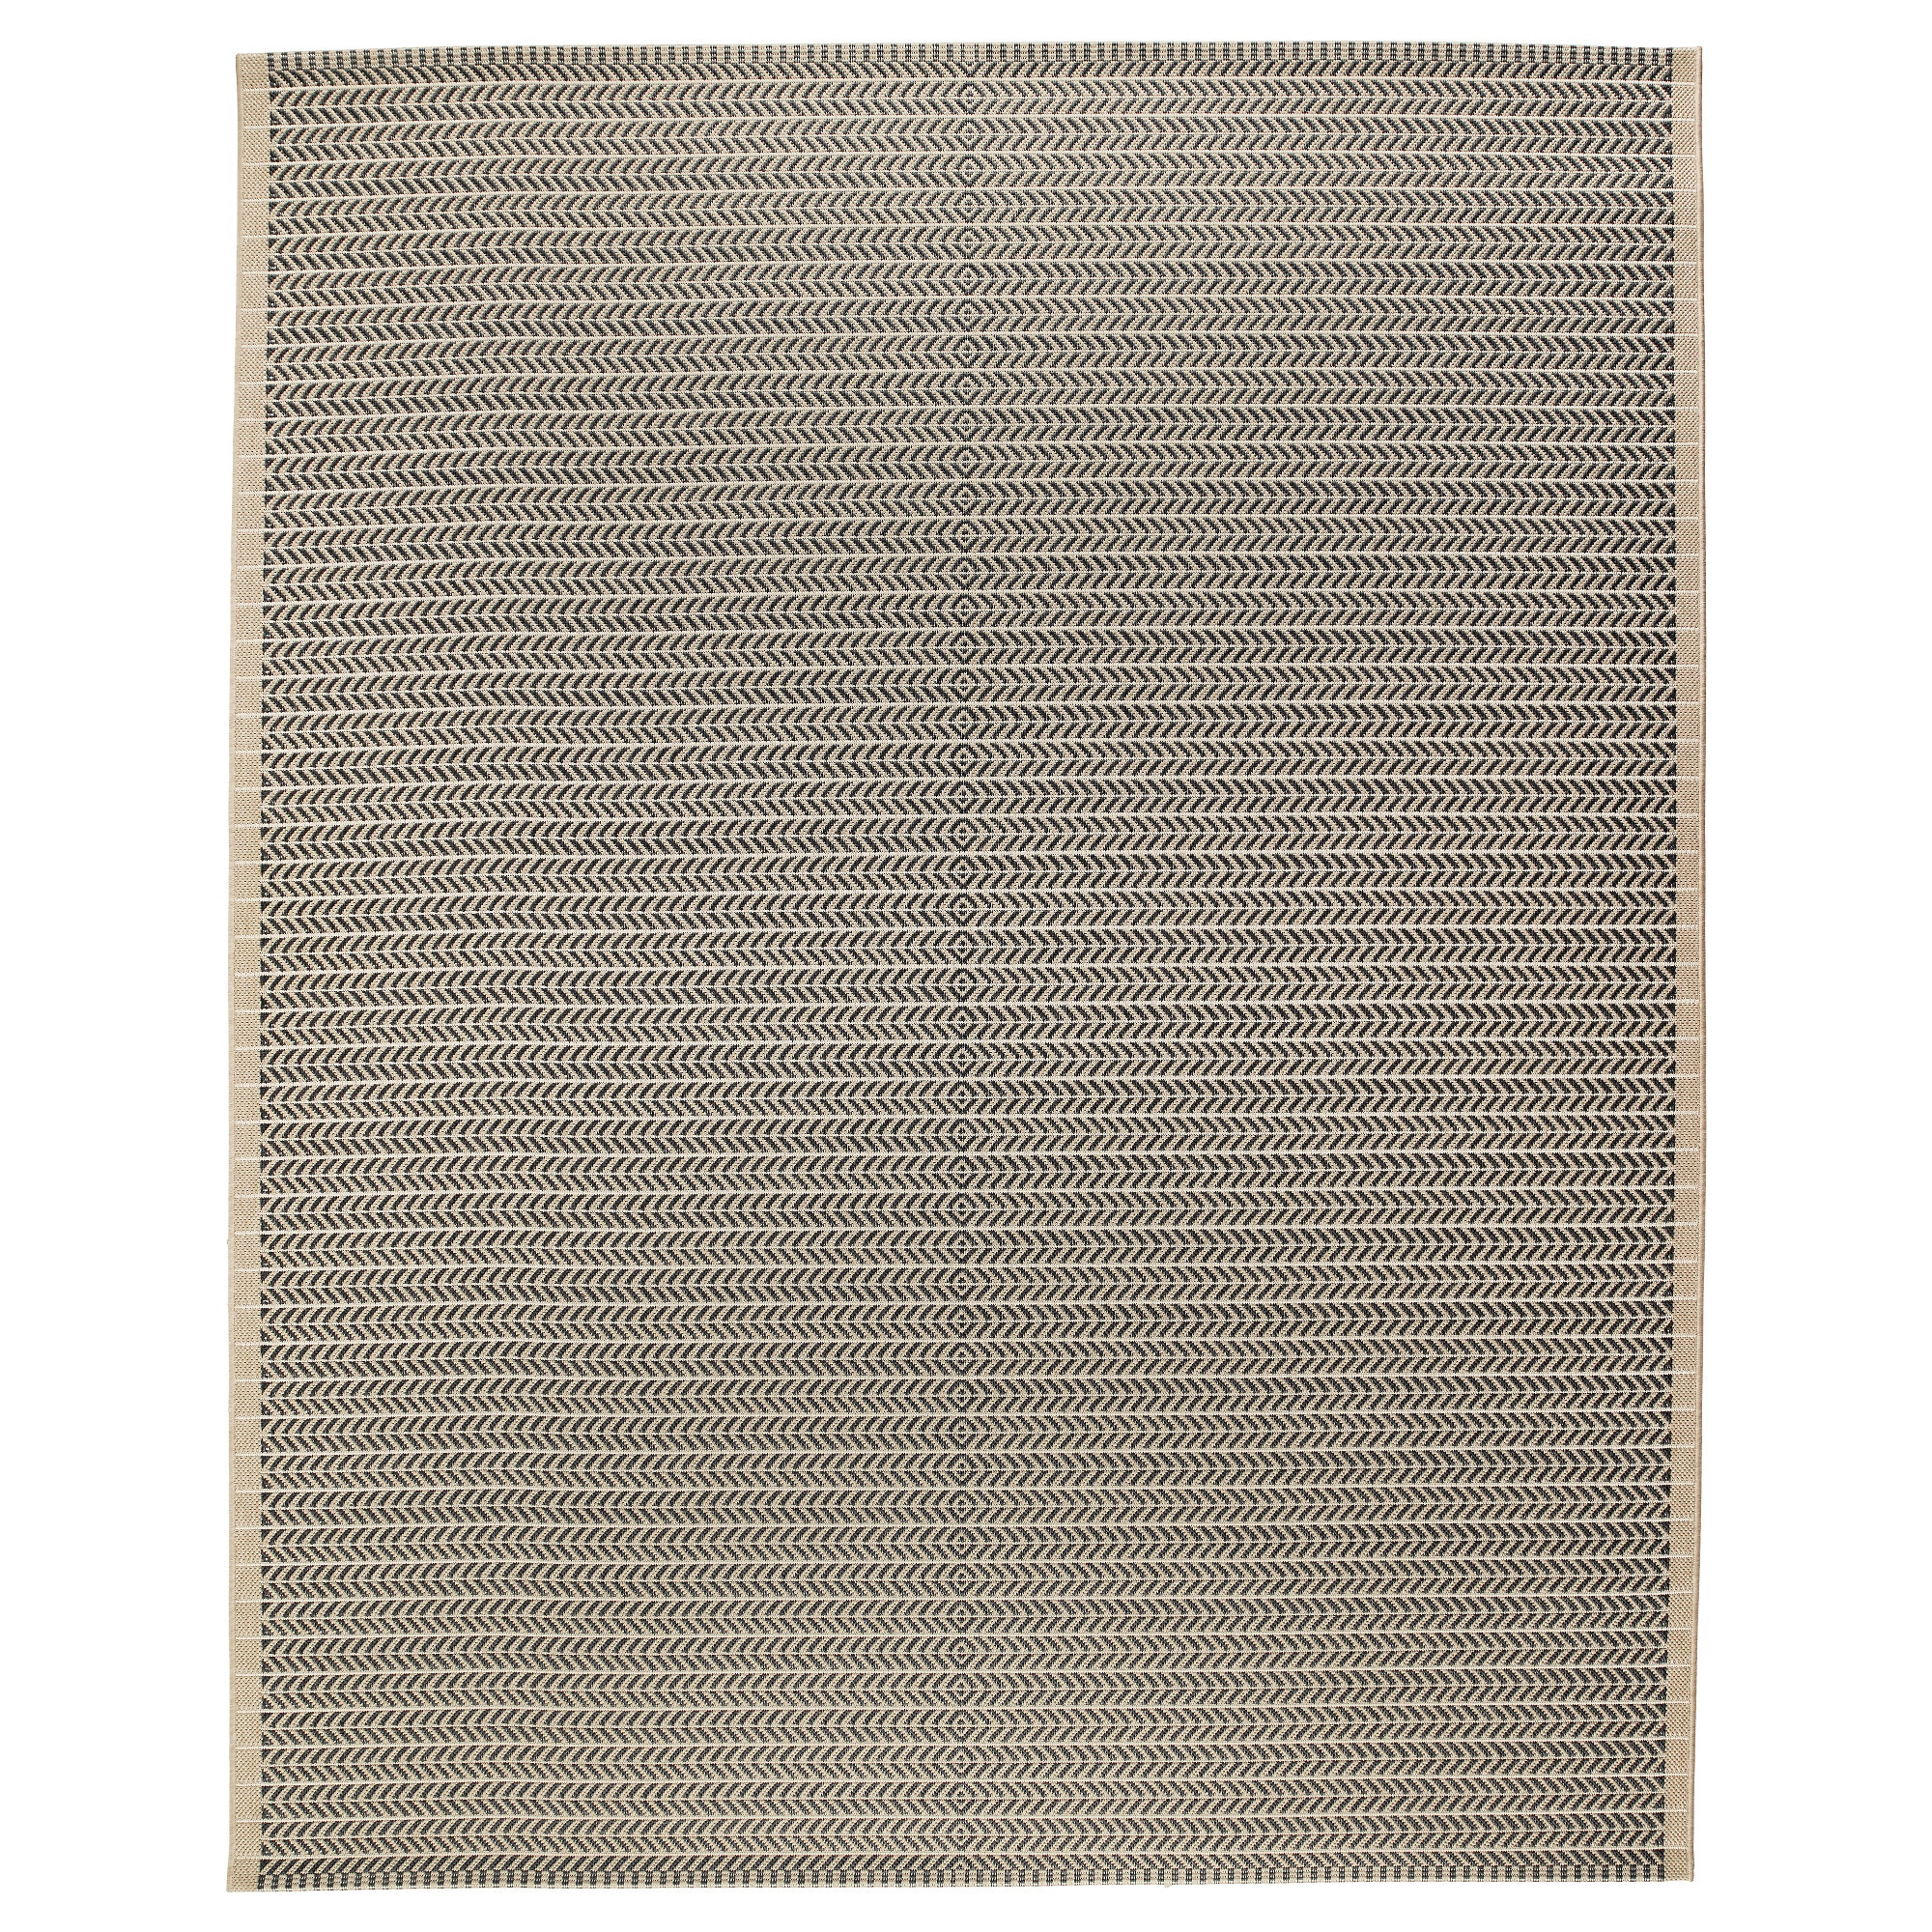 "LOBB""K Rug flatwoven in outdoor IKEA"